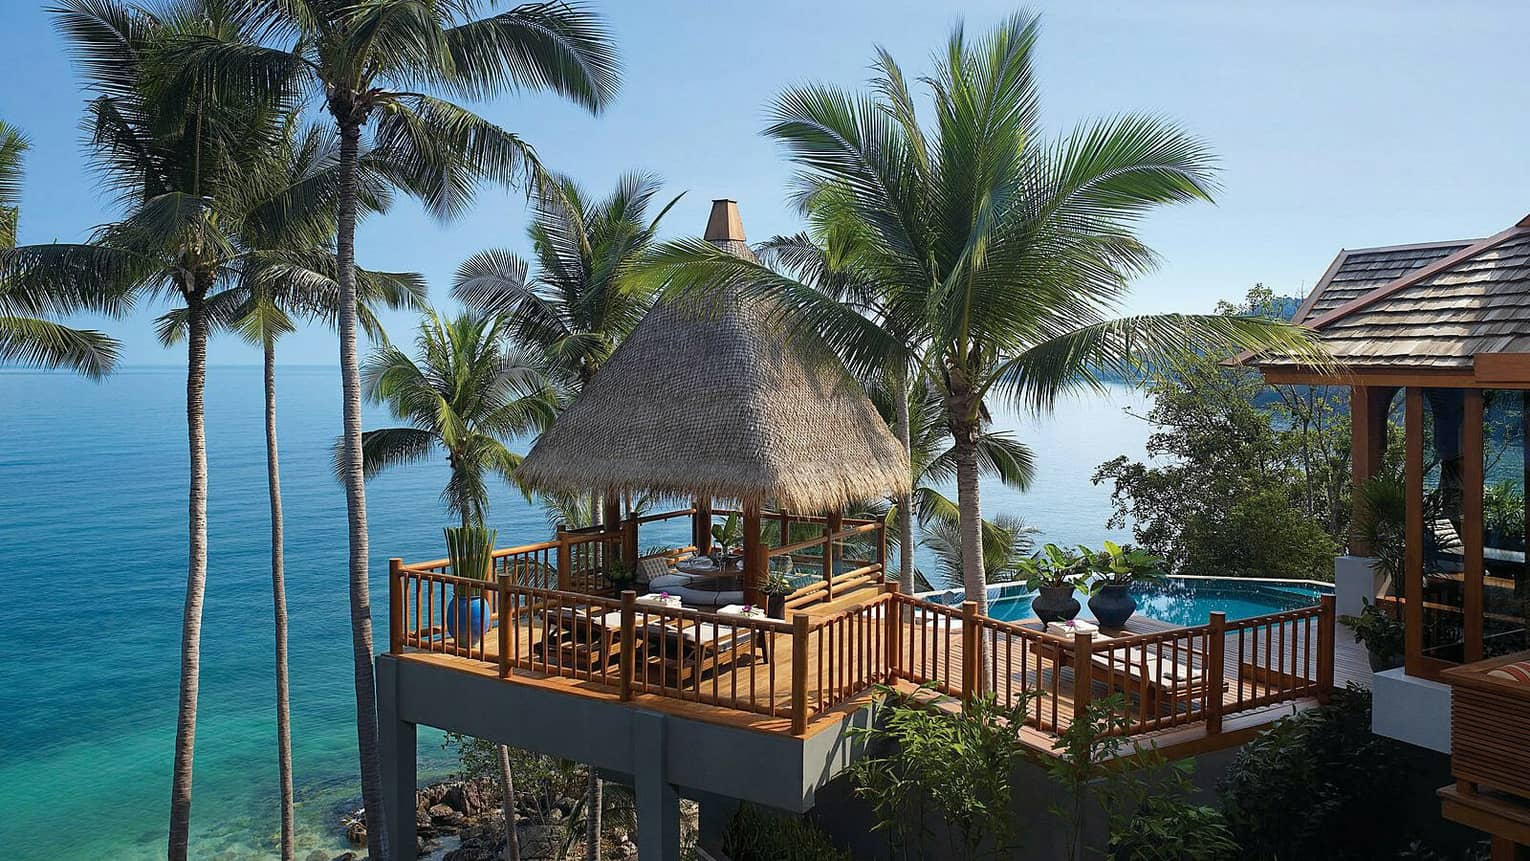 Two-Bedroom Residence Villa with Pool patio with thatched roof cabana on mountain high above trees, ocean